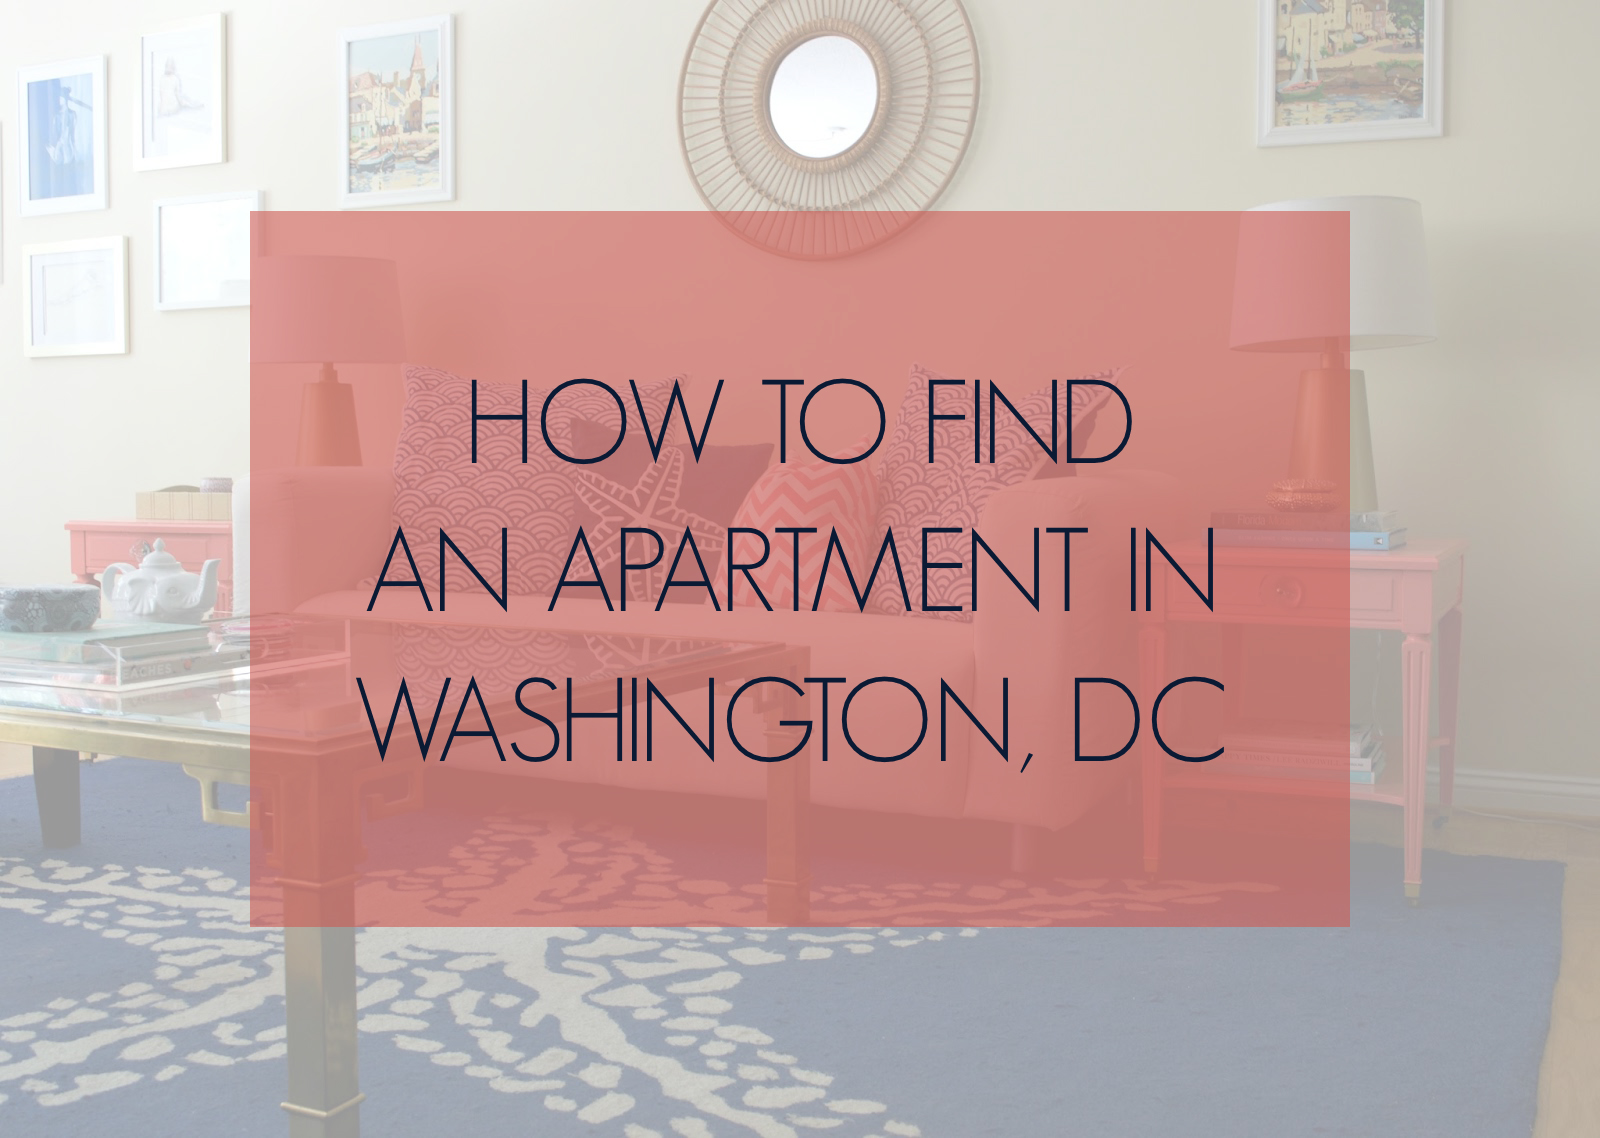 washington, dc apartments - how to find an apartment in dc - dc apartment